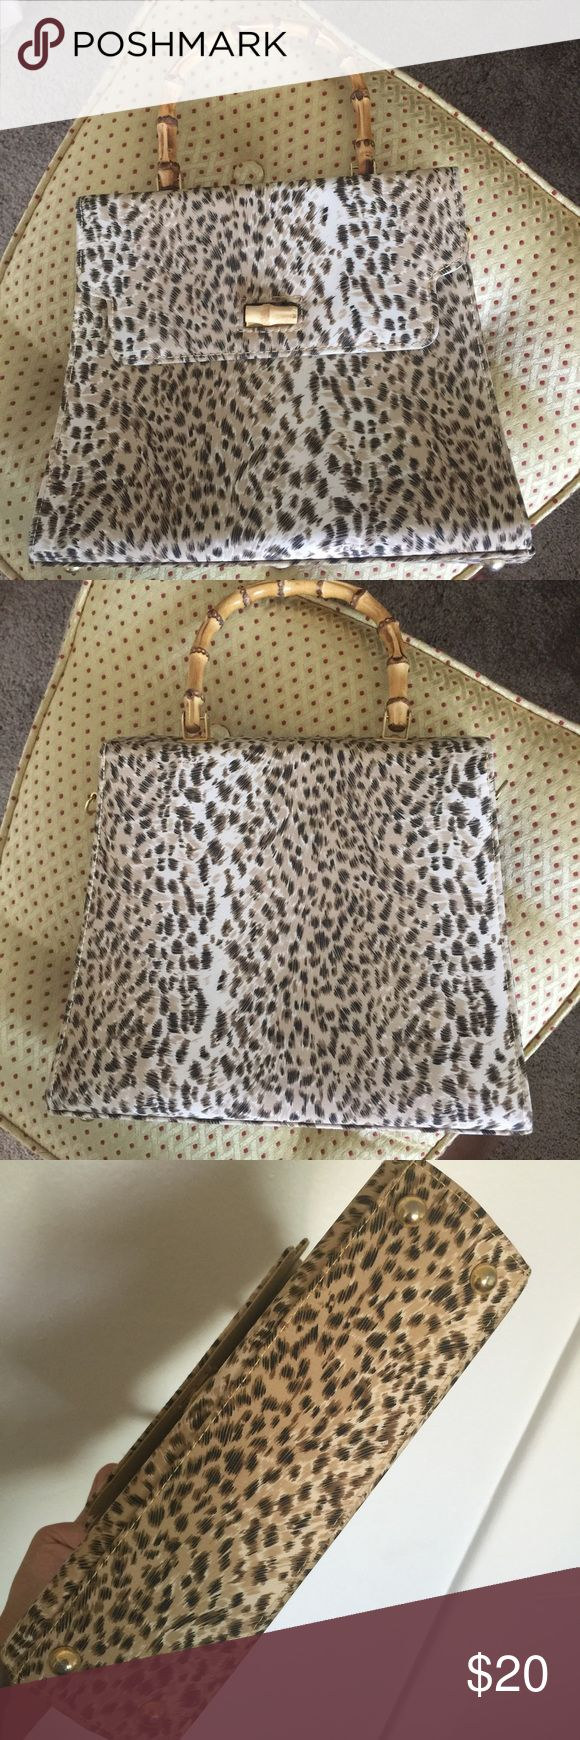 Debenhams leopard purse Debenhams leopard purse with bamboo handle. Inside has a few marks on it from normal wear but otherwise in good condition. Debenhams Bags Mini Bags